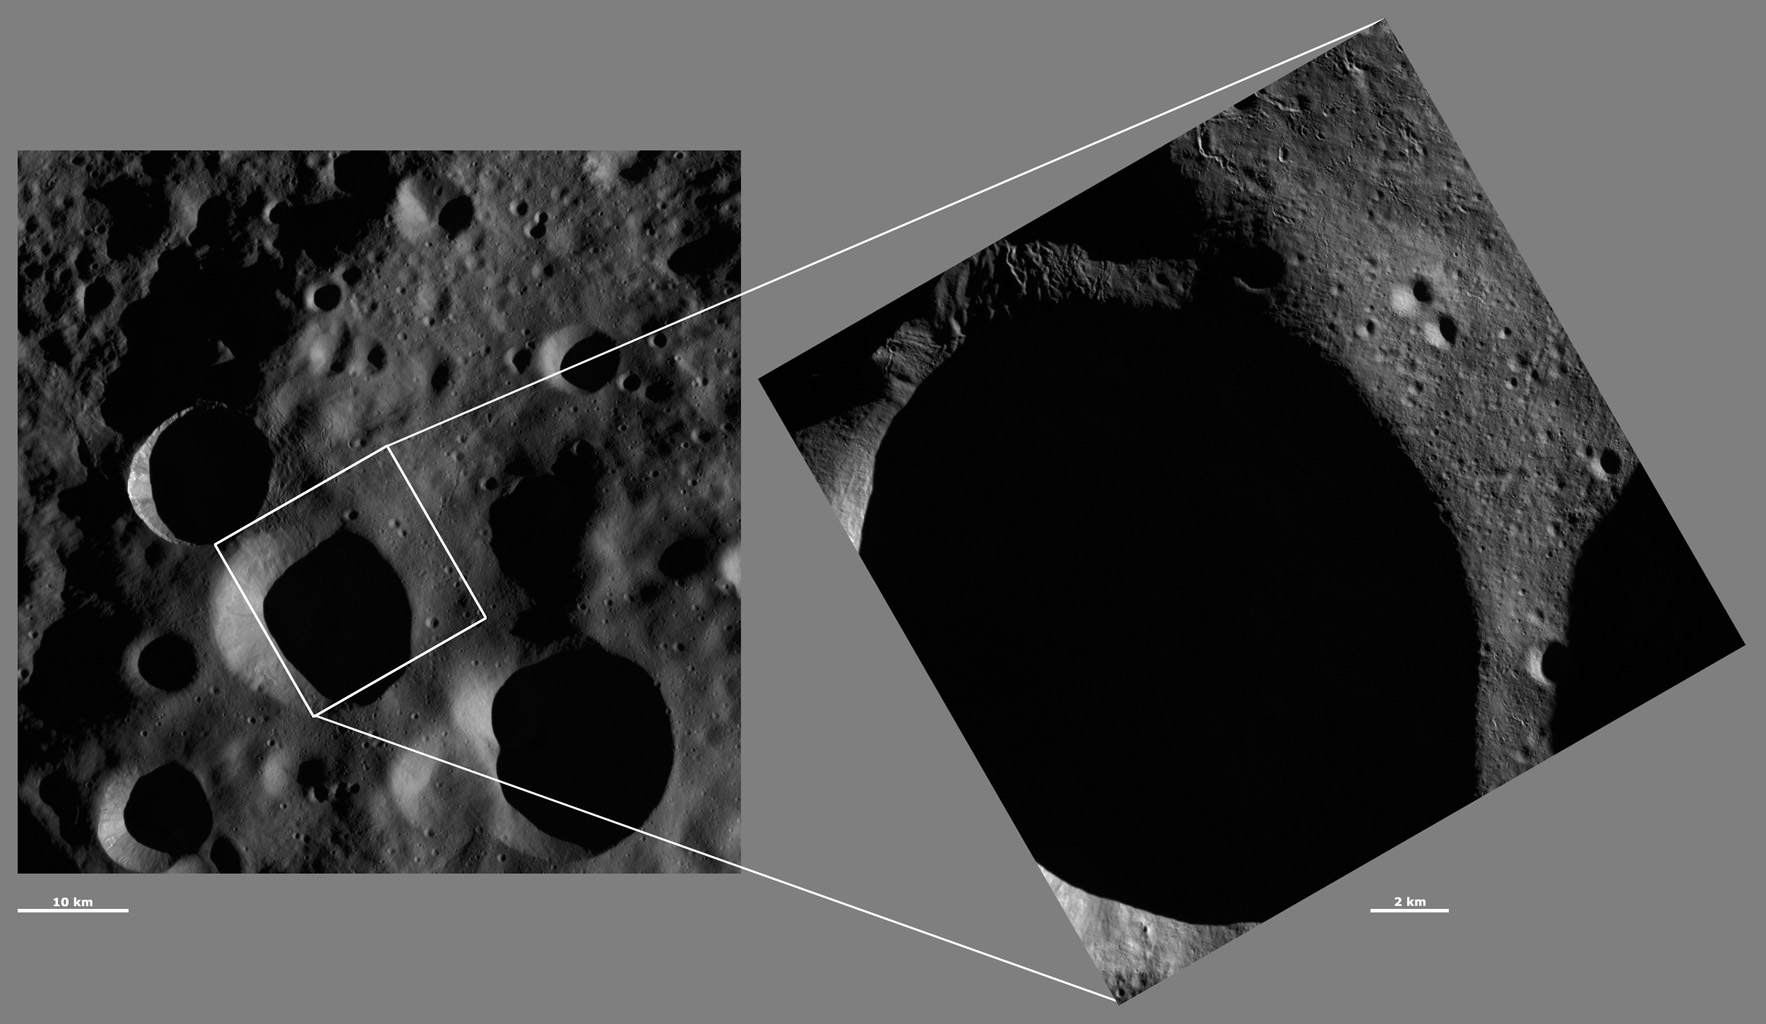 HAMO and LAMO Images of Floronia Crater